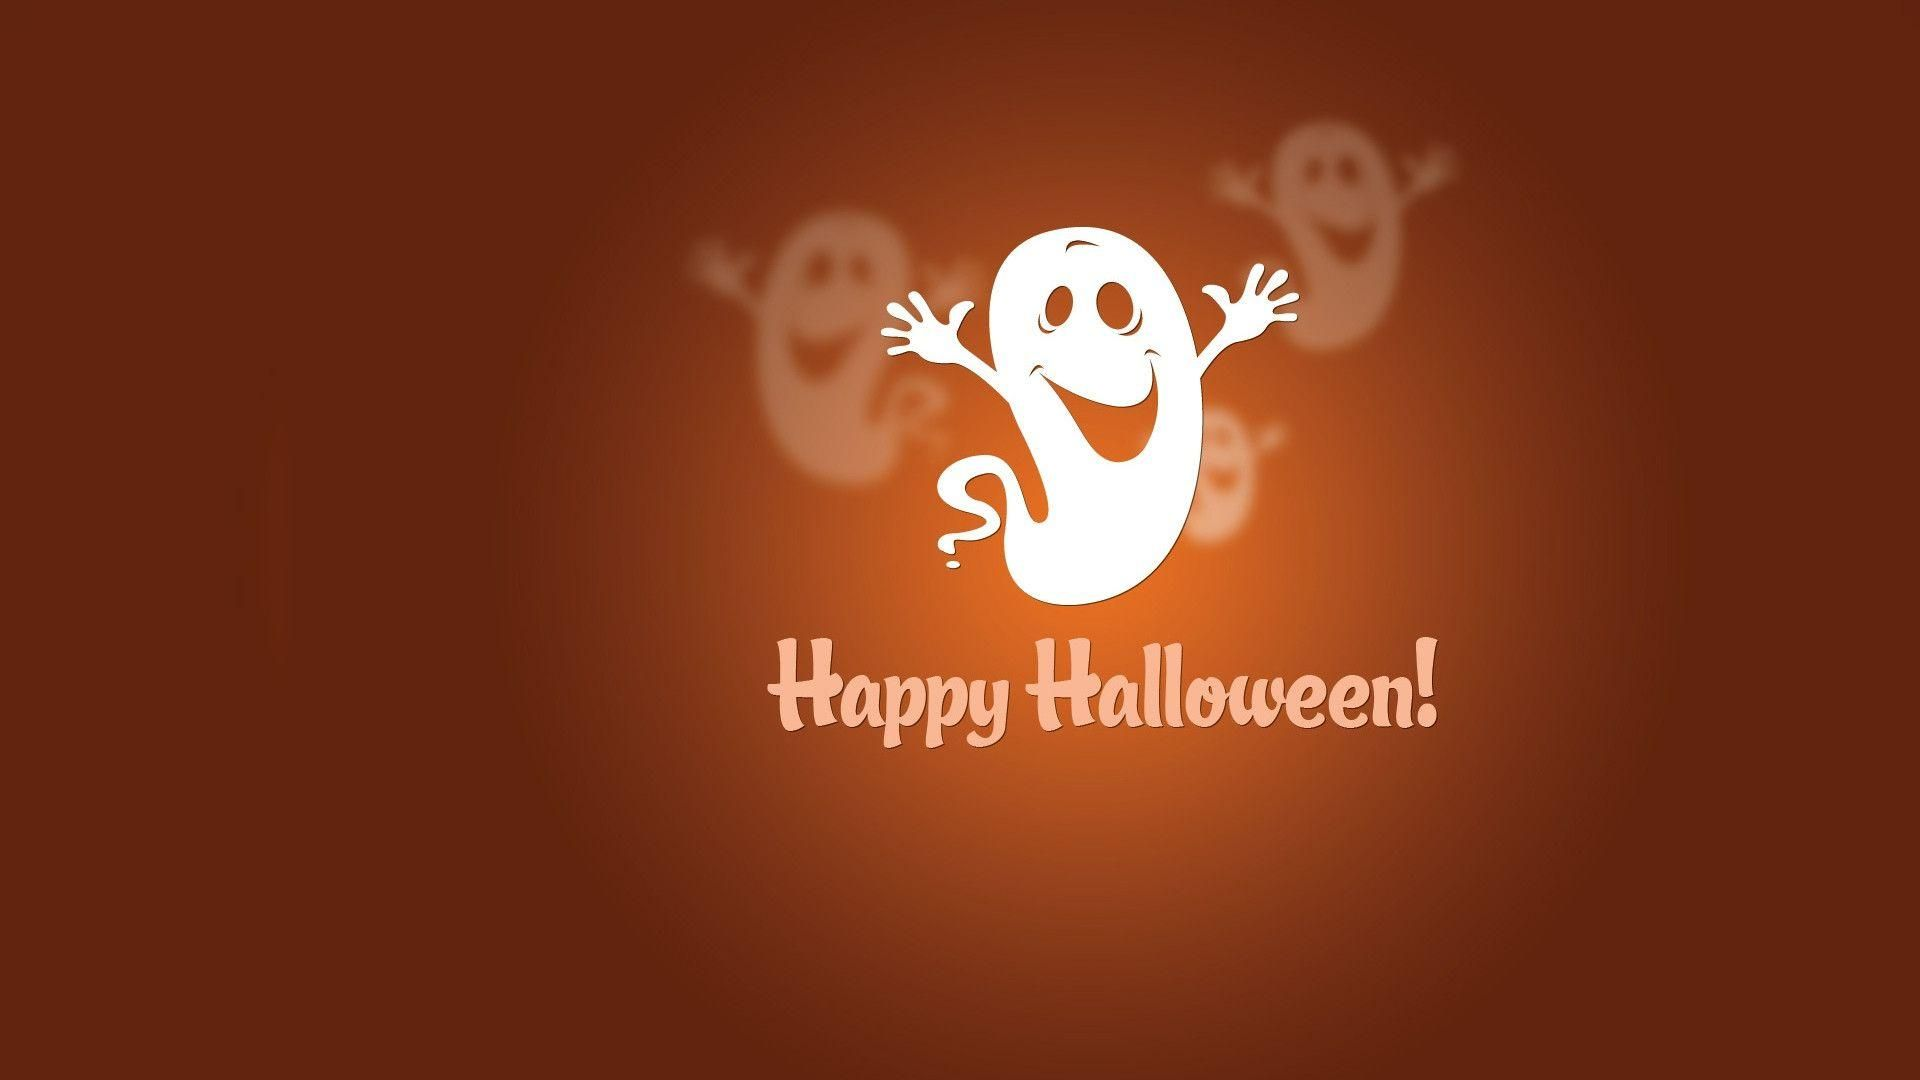 Cute Halloween Hd Desktop Wallpapers Halloween Desktop Wallpaper Halloween Wallpaper Desktop Wallpapers Backgrounds